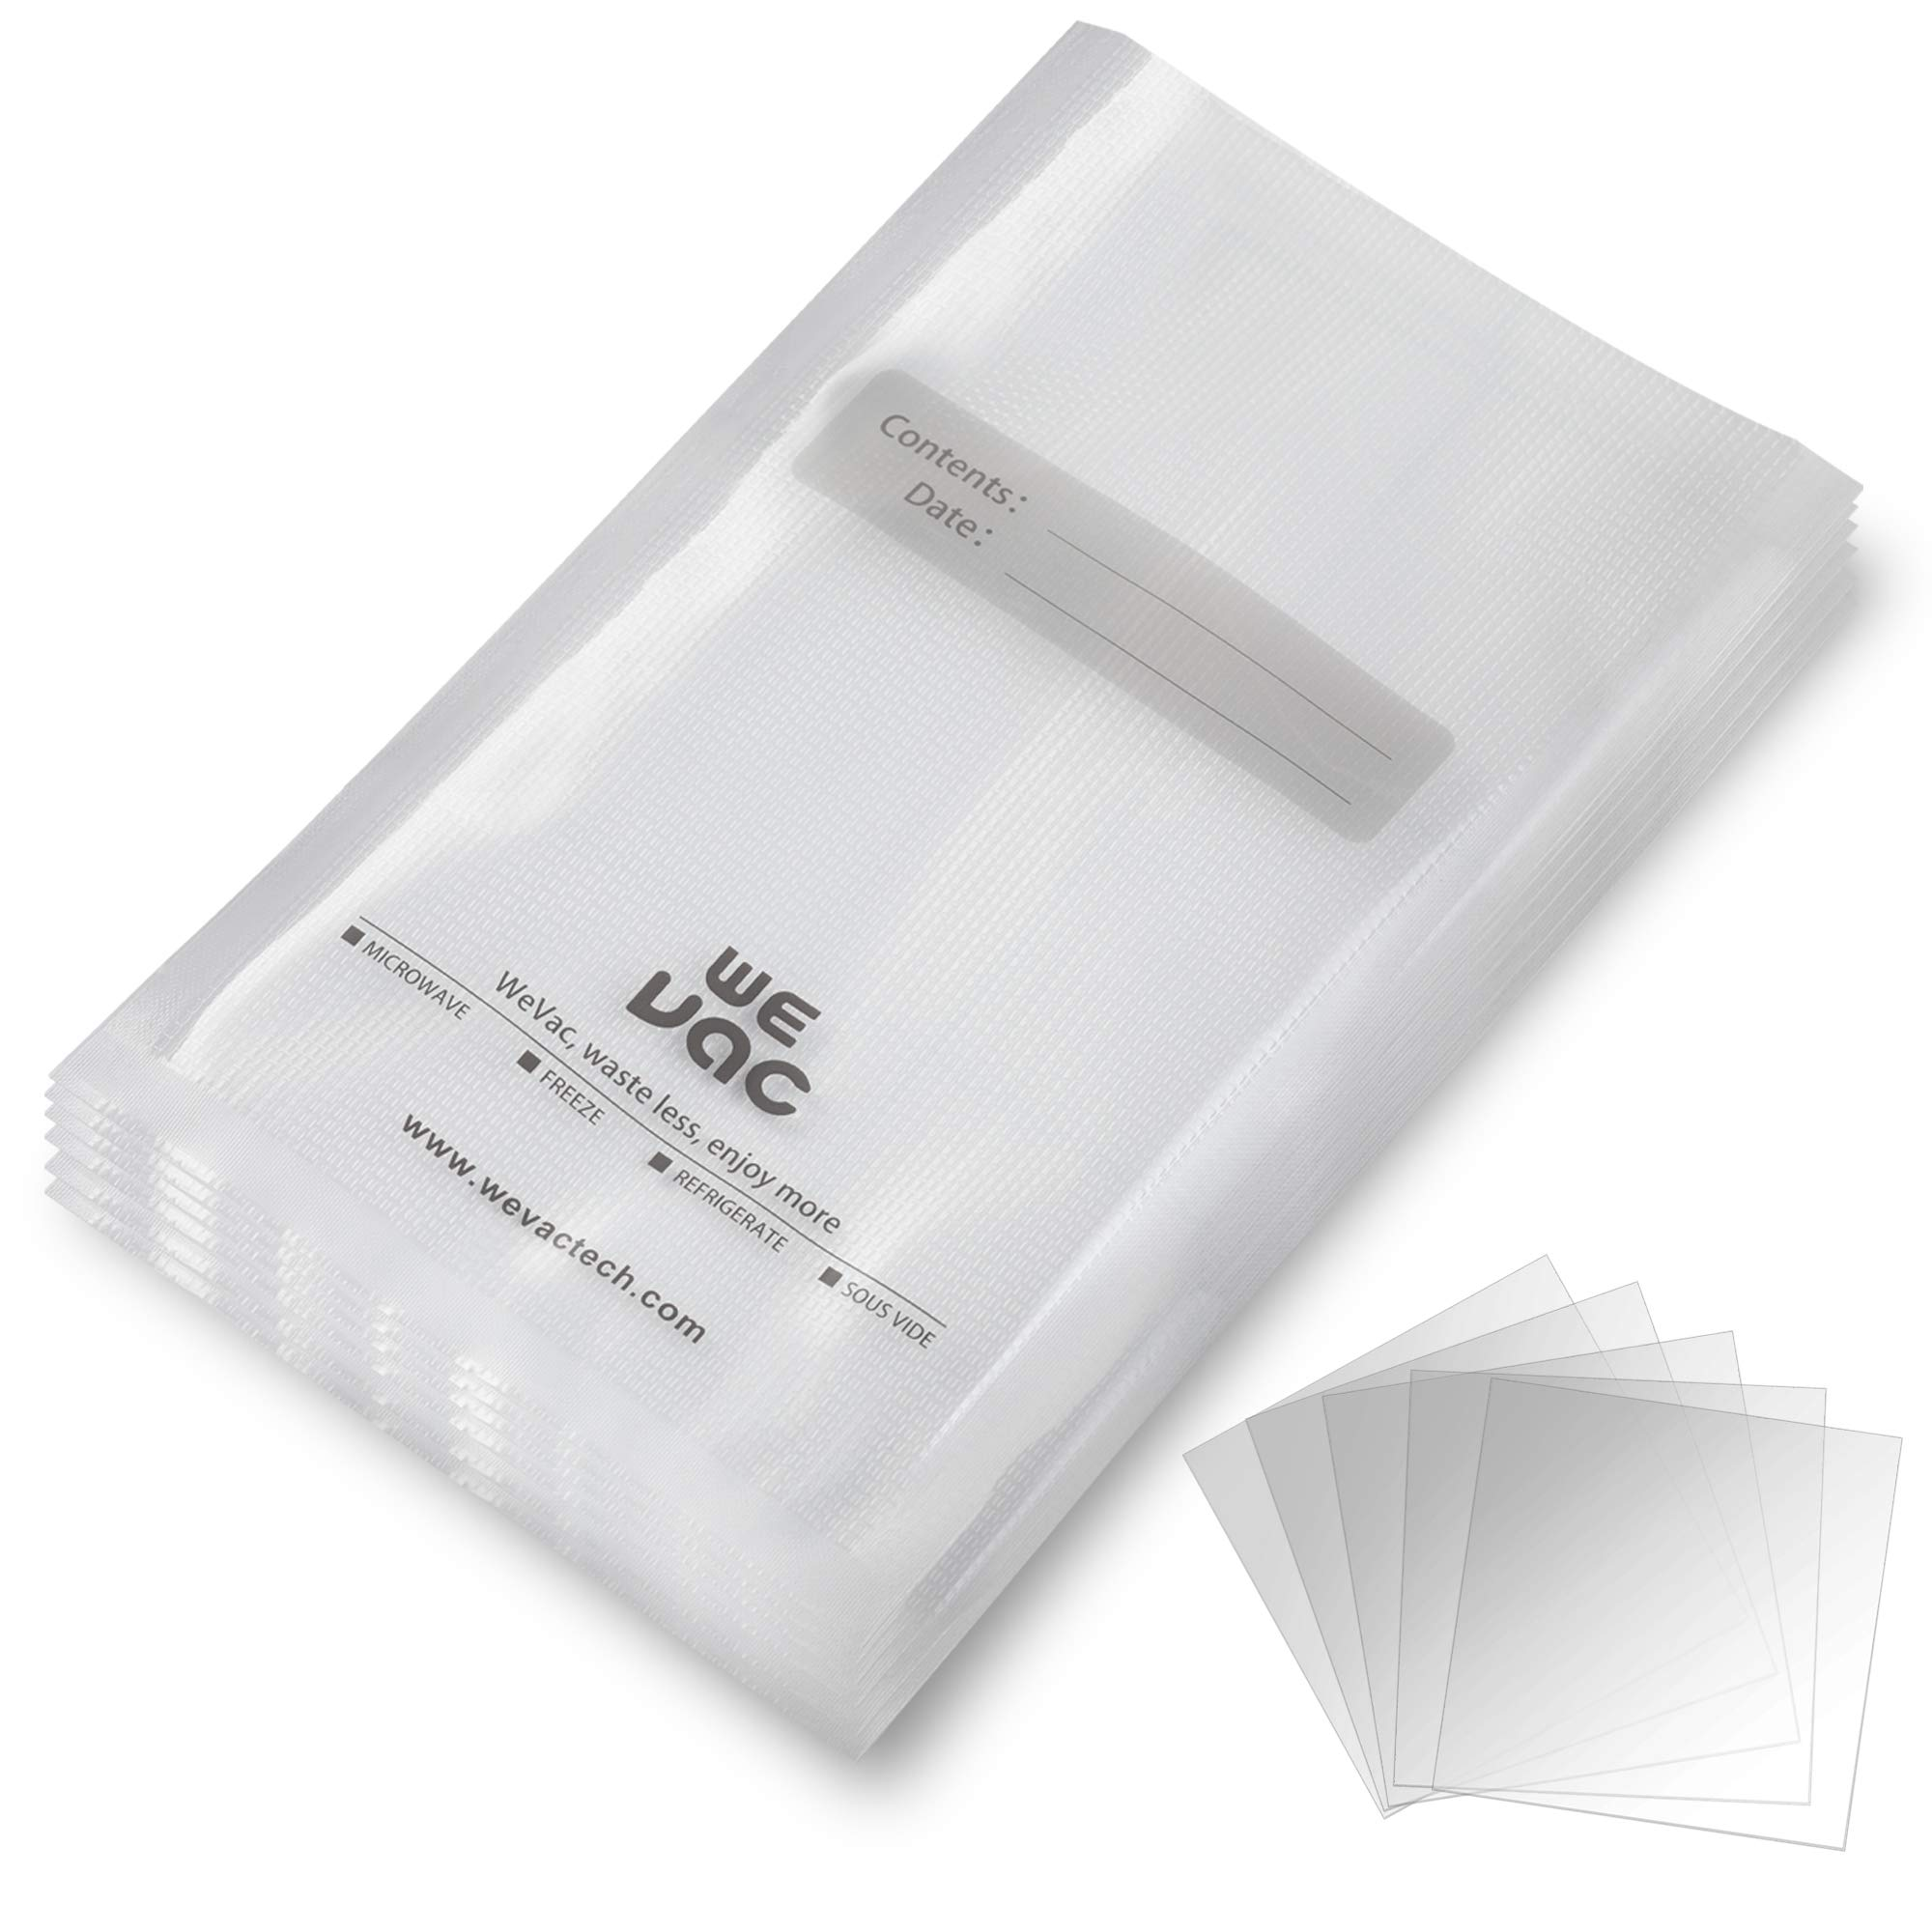 Vacuum Sealer Bags 100 Gallon 11x16 Inch for Food Saver, Seal a Meal, Gamesaver, Weston. Commercial Grade, BPA Free, Heavy Duty, Puncture Prevention, Great for vac storage, Meal Prep or Sous Videion, Great for Meal Prep or Sous Vide by Wevac